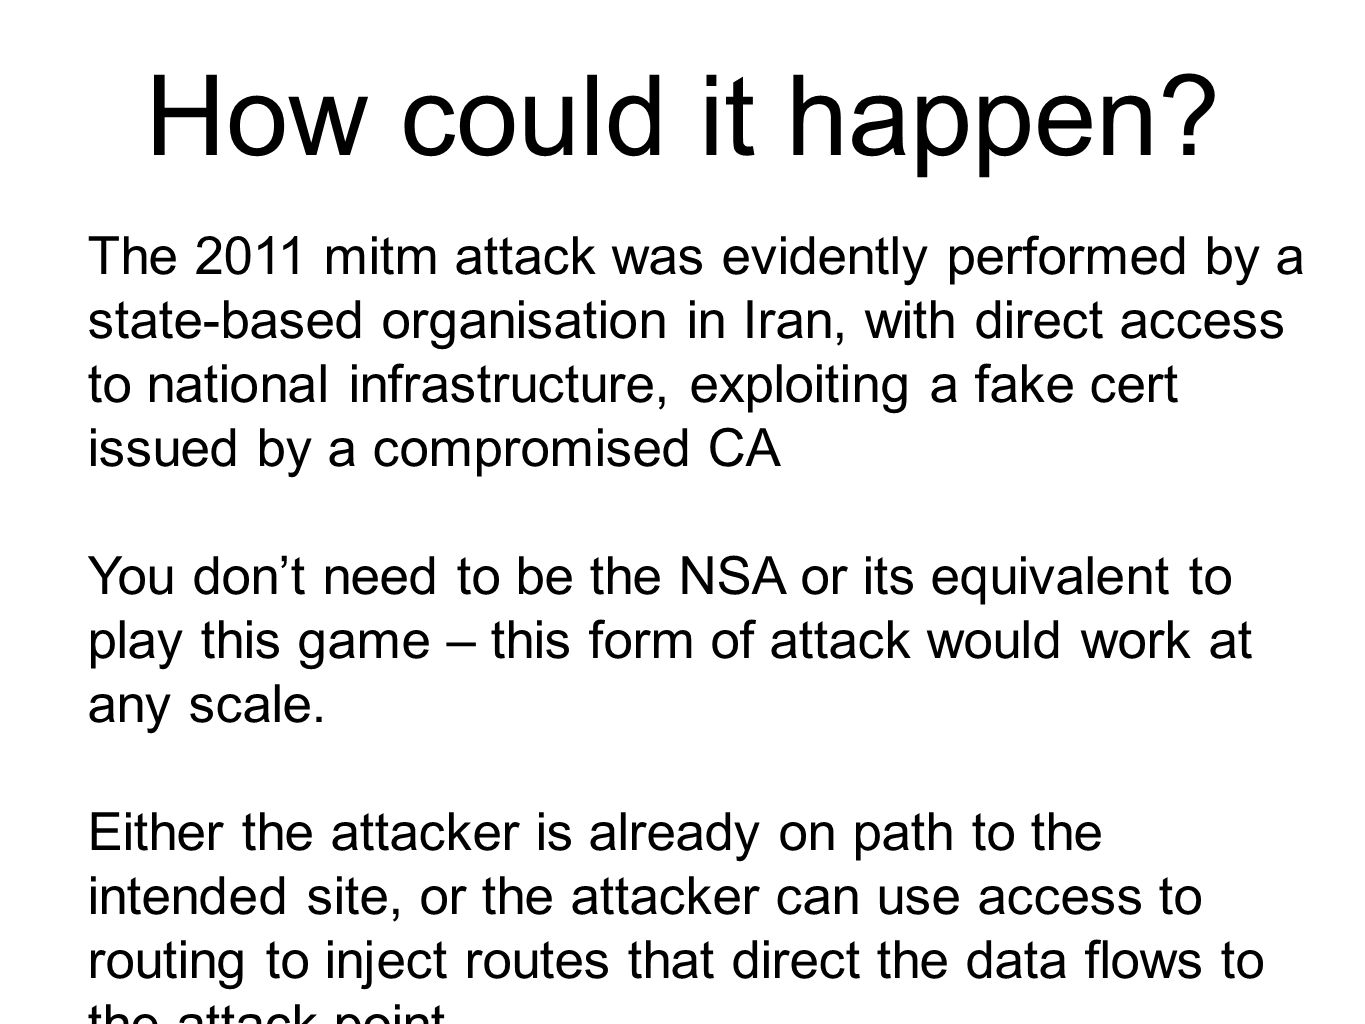 The 2011 mitm attack was evidently performed by a state-based organisation in Iran, with direct access to national infrastructure, exploiting a fake cert issued by a compromised CA You don't need to be the NSA or its equivalent to play this game – this form of attack would work at any scale.